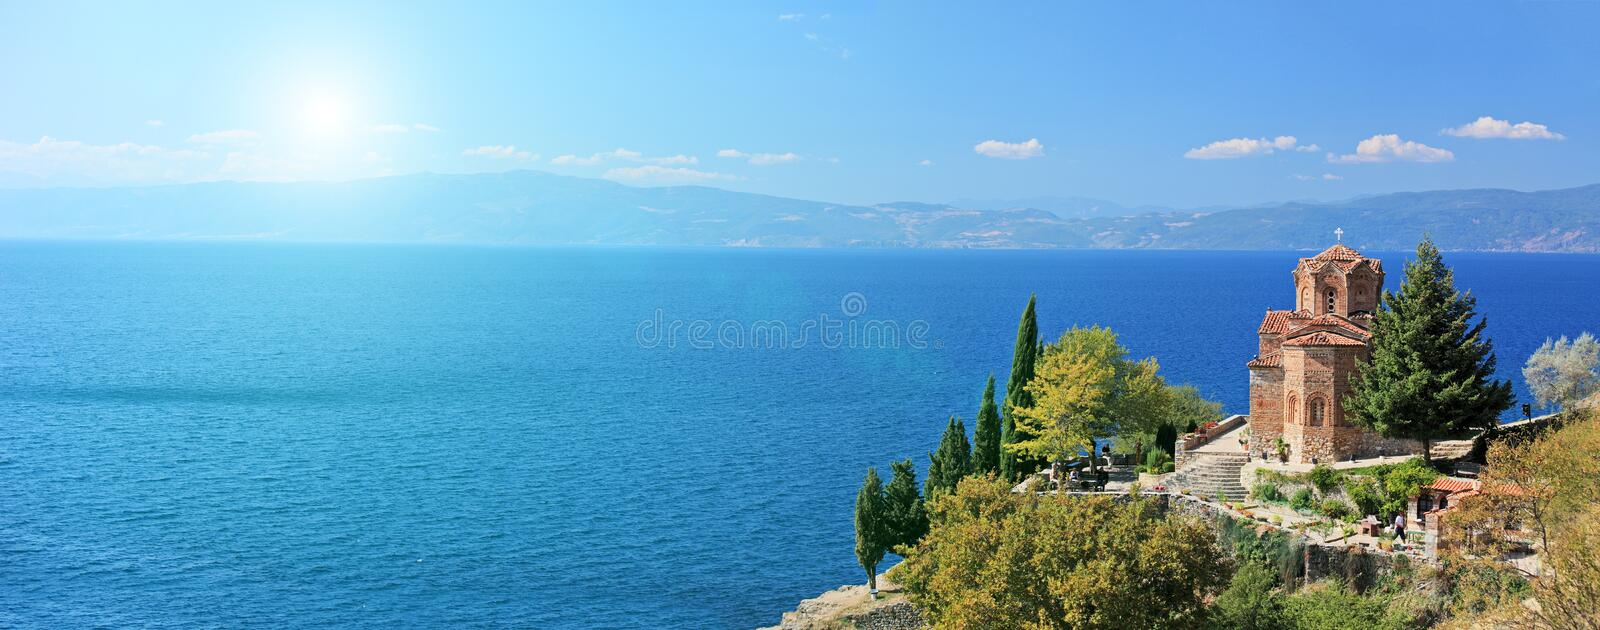 St. Jovan Kaneo church overlooking Ohrid lake, Macedonia on a sunny day. View of a St. Jovan Kaneo church overlooking Ohrid lake, Macedonia on a sunny day royalty free stock photo